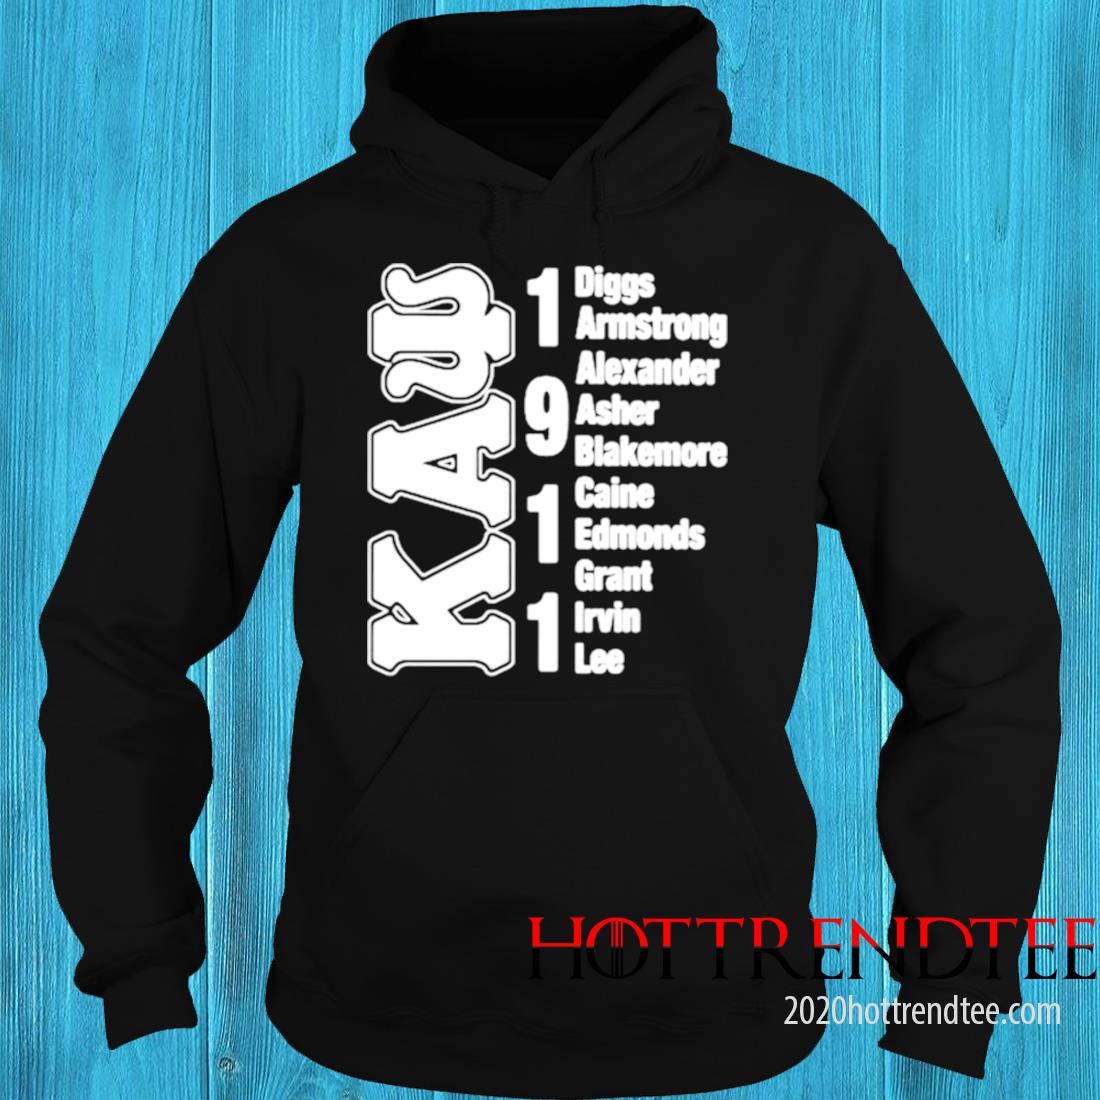 Kaw Diggs Armstrong Alexander Caine Edmonds Grant Irvin Lee 1911 Shirt hoodie